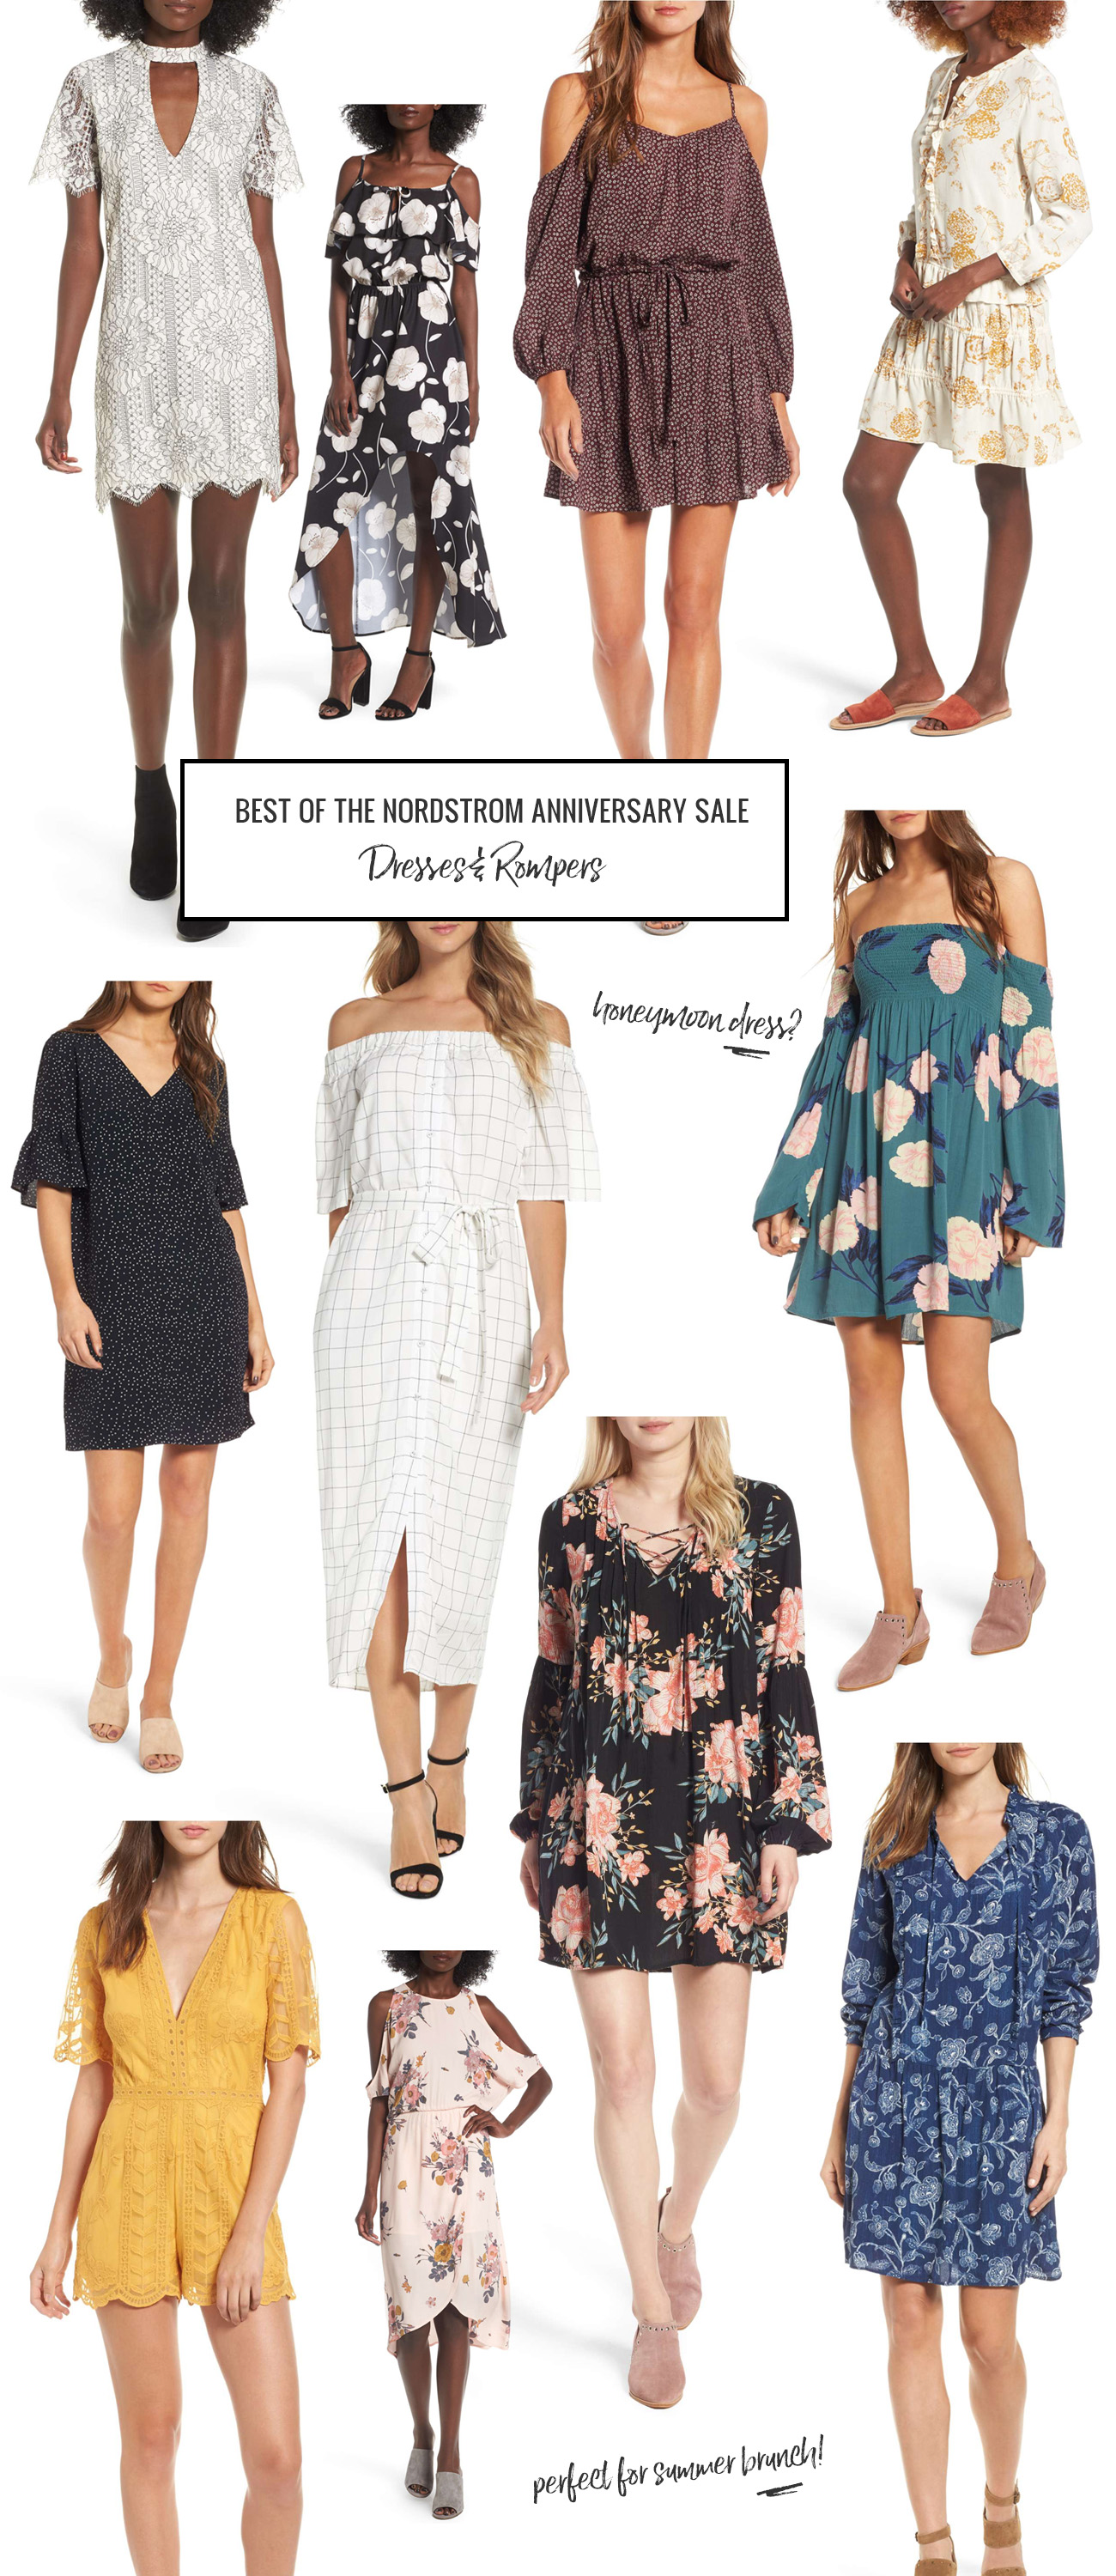 Some particular picks for workwear from the Nordstrom Half Yearly Sale of , after the jump This post contains affiliate links and Corporette® may earn commissions for purchases made through links in this post. For more details see here. Thank you so much for your support! Dresses for Work in the Nordstrom Half-Yearly Sale.